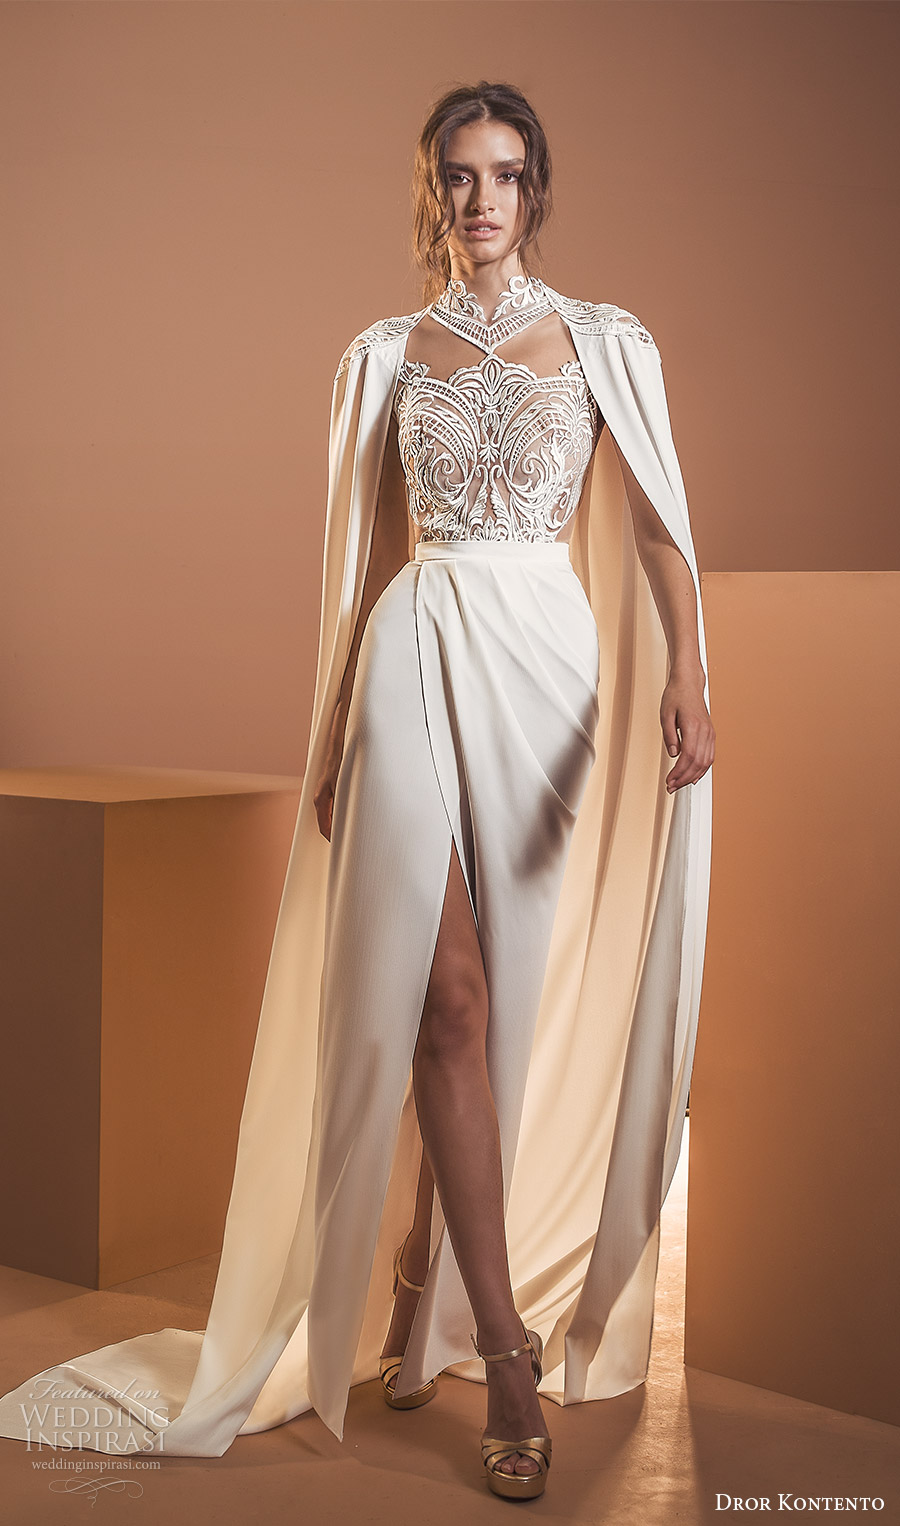 dror kontento 2020 bridal long cape sleeves high neckline embellished lace sheer bodice column sheath wedding dress with cape slit skirt chapel train (6) mv